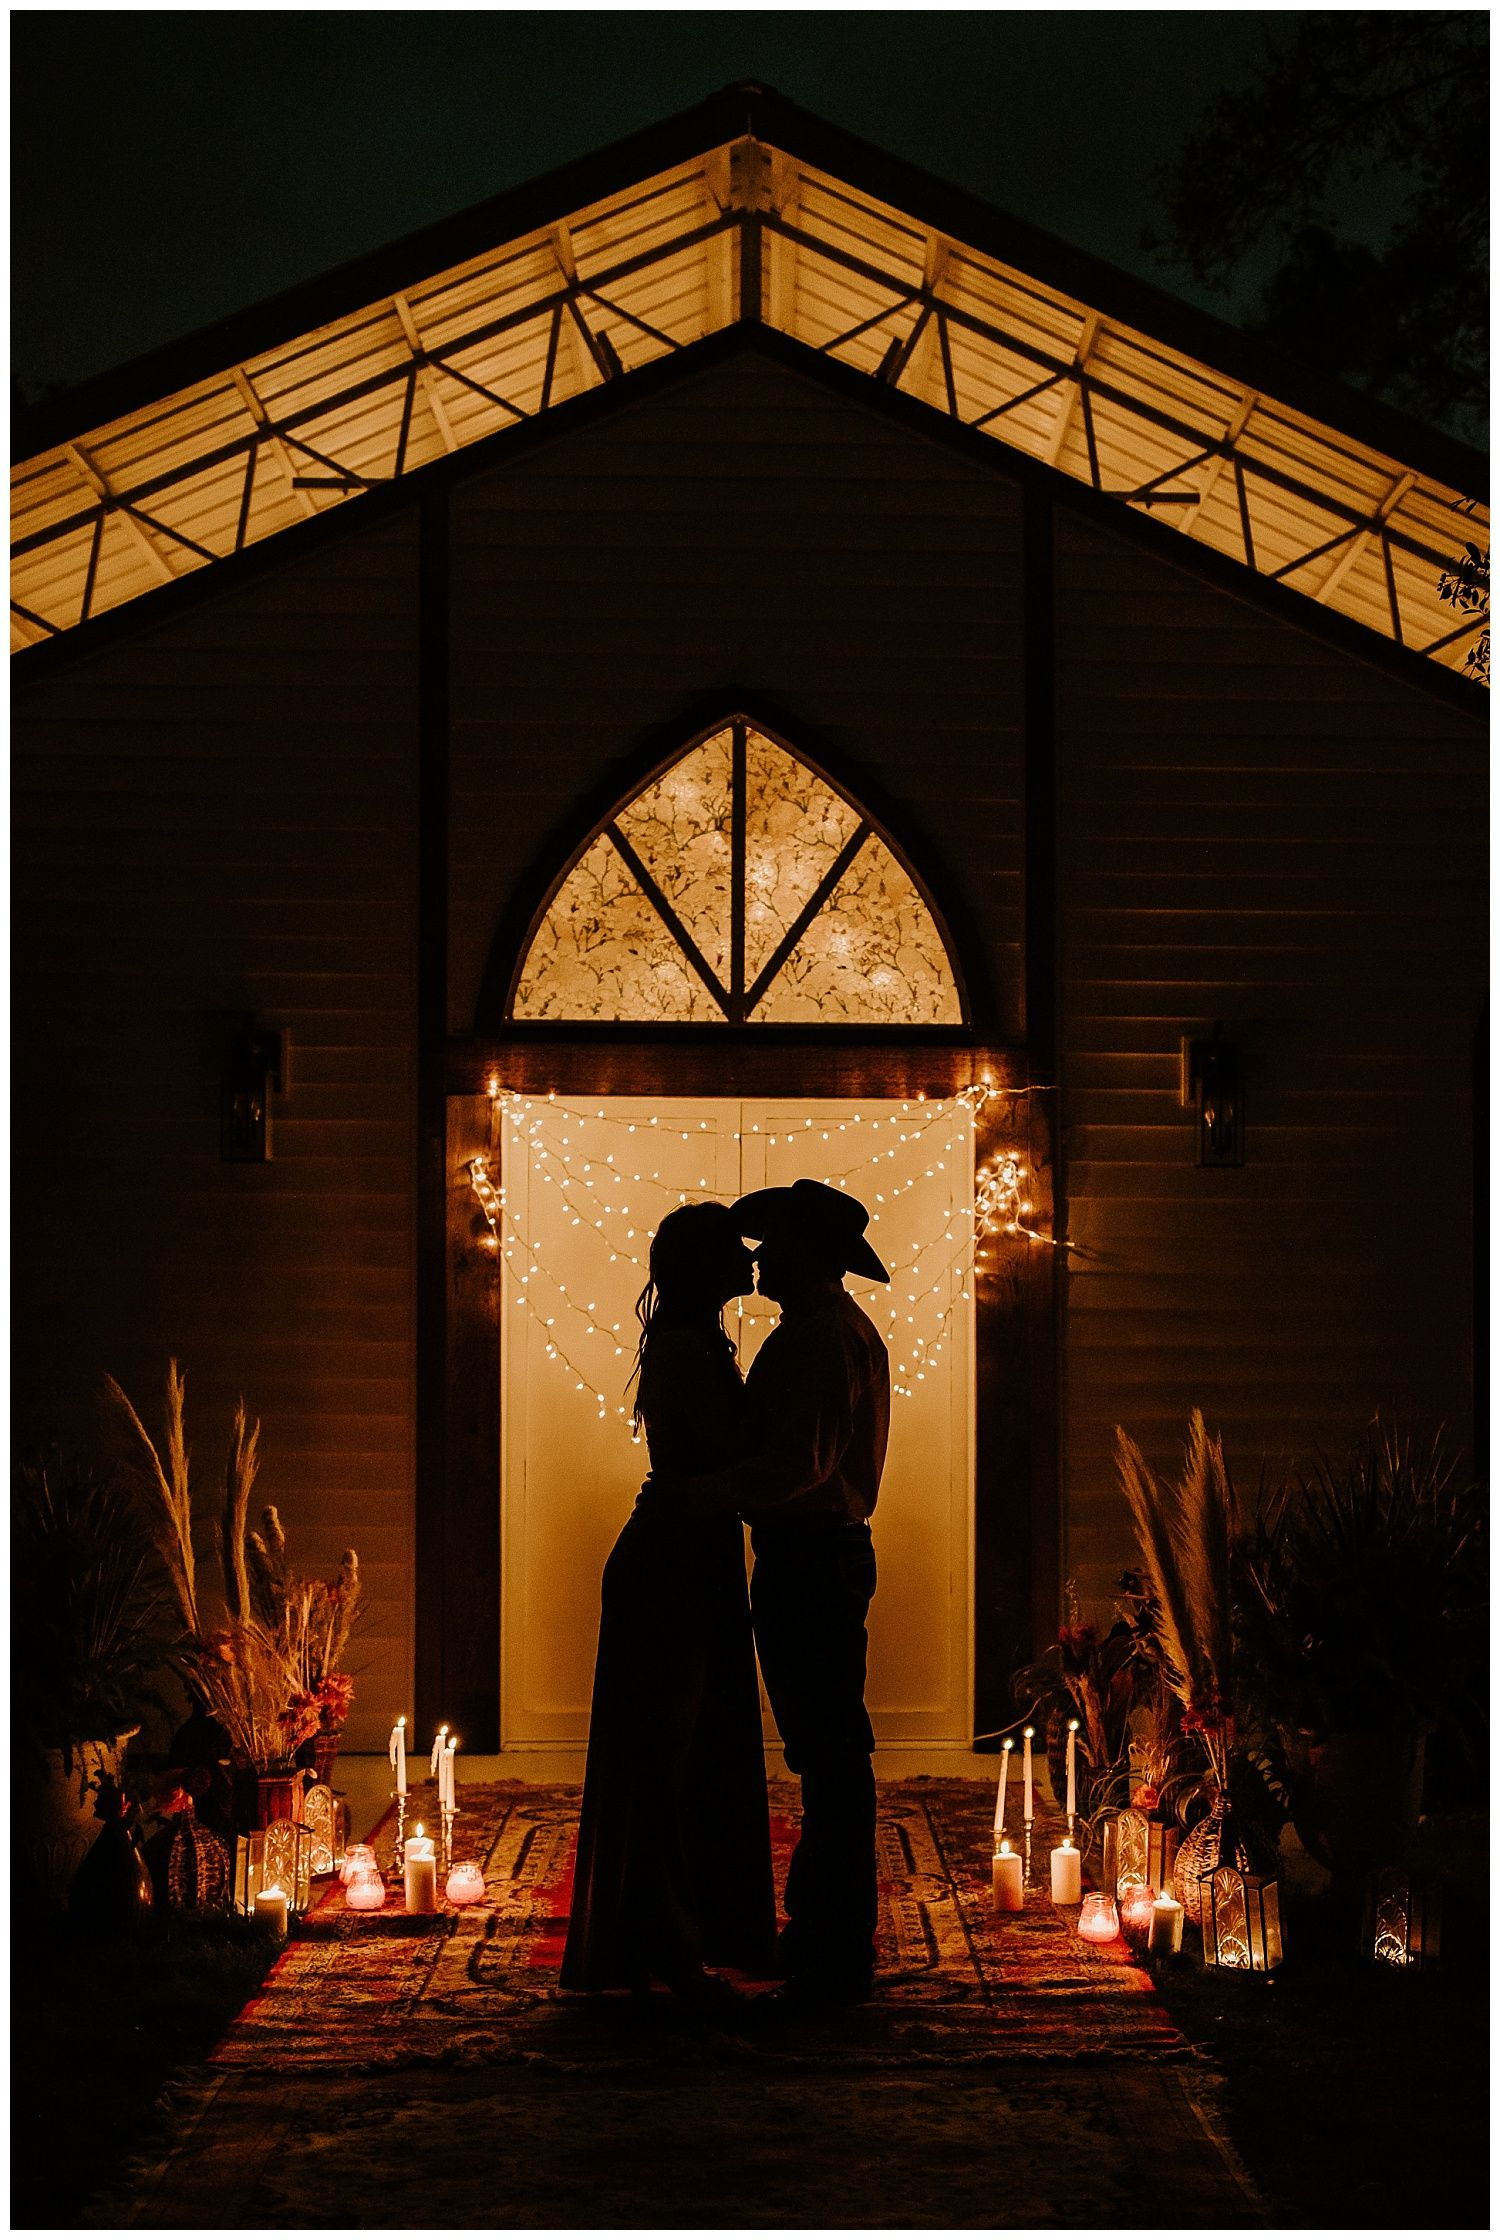 Cattleya Chapel Wedding in 2020 | Beach wedding ...